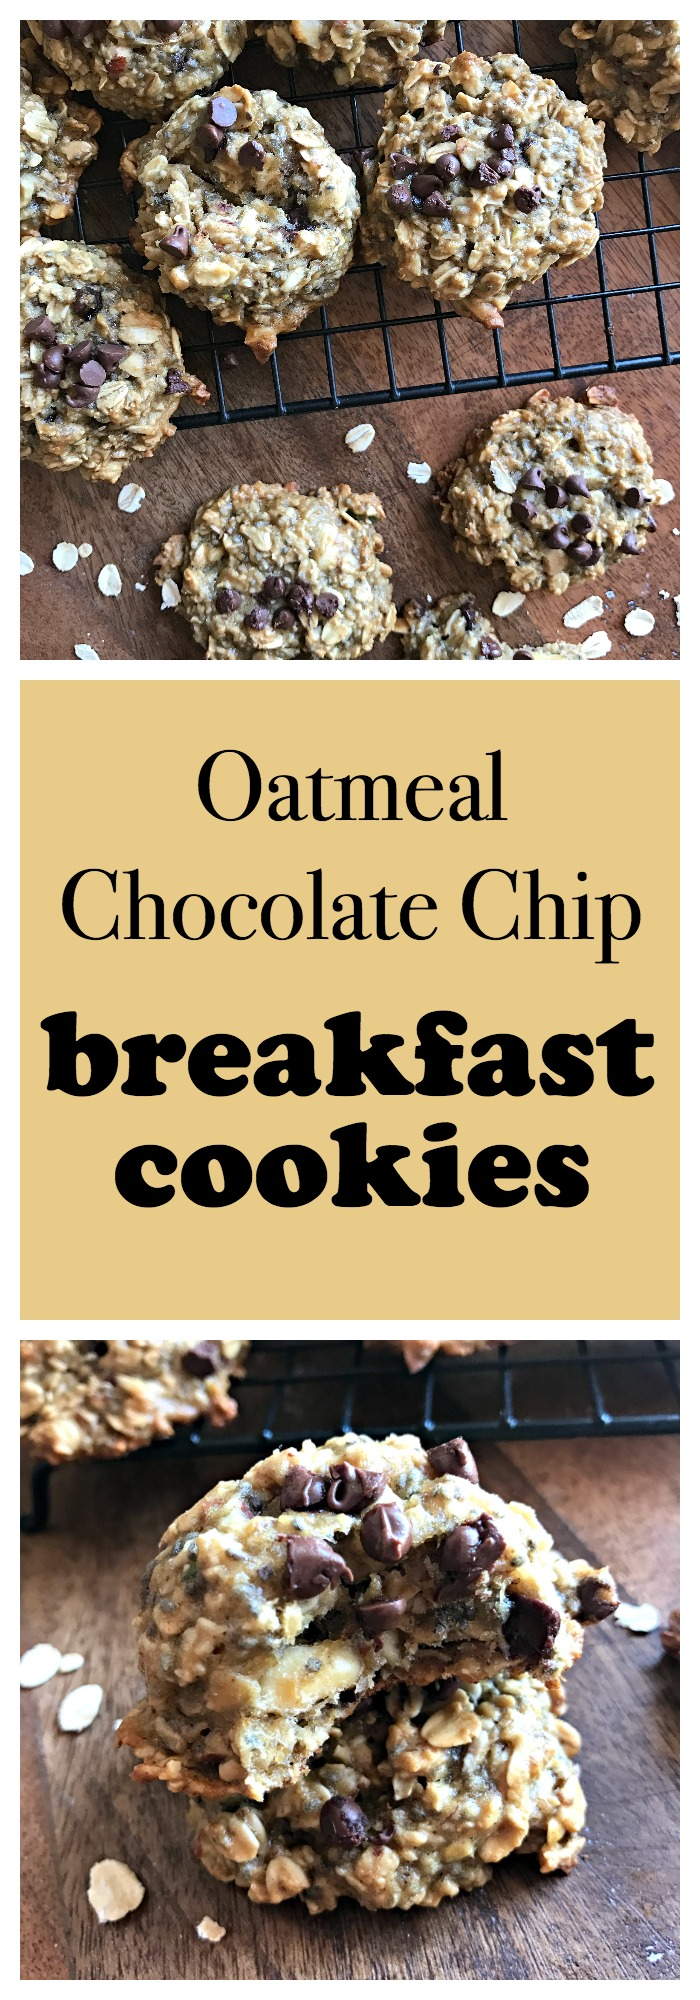 Oatmeal Chocolate Chip Breakfast Cookies 2